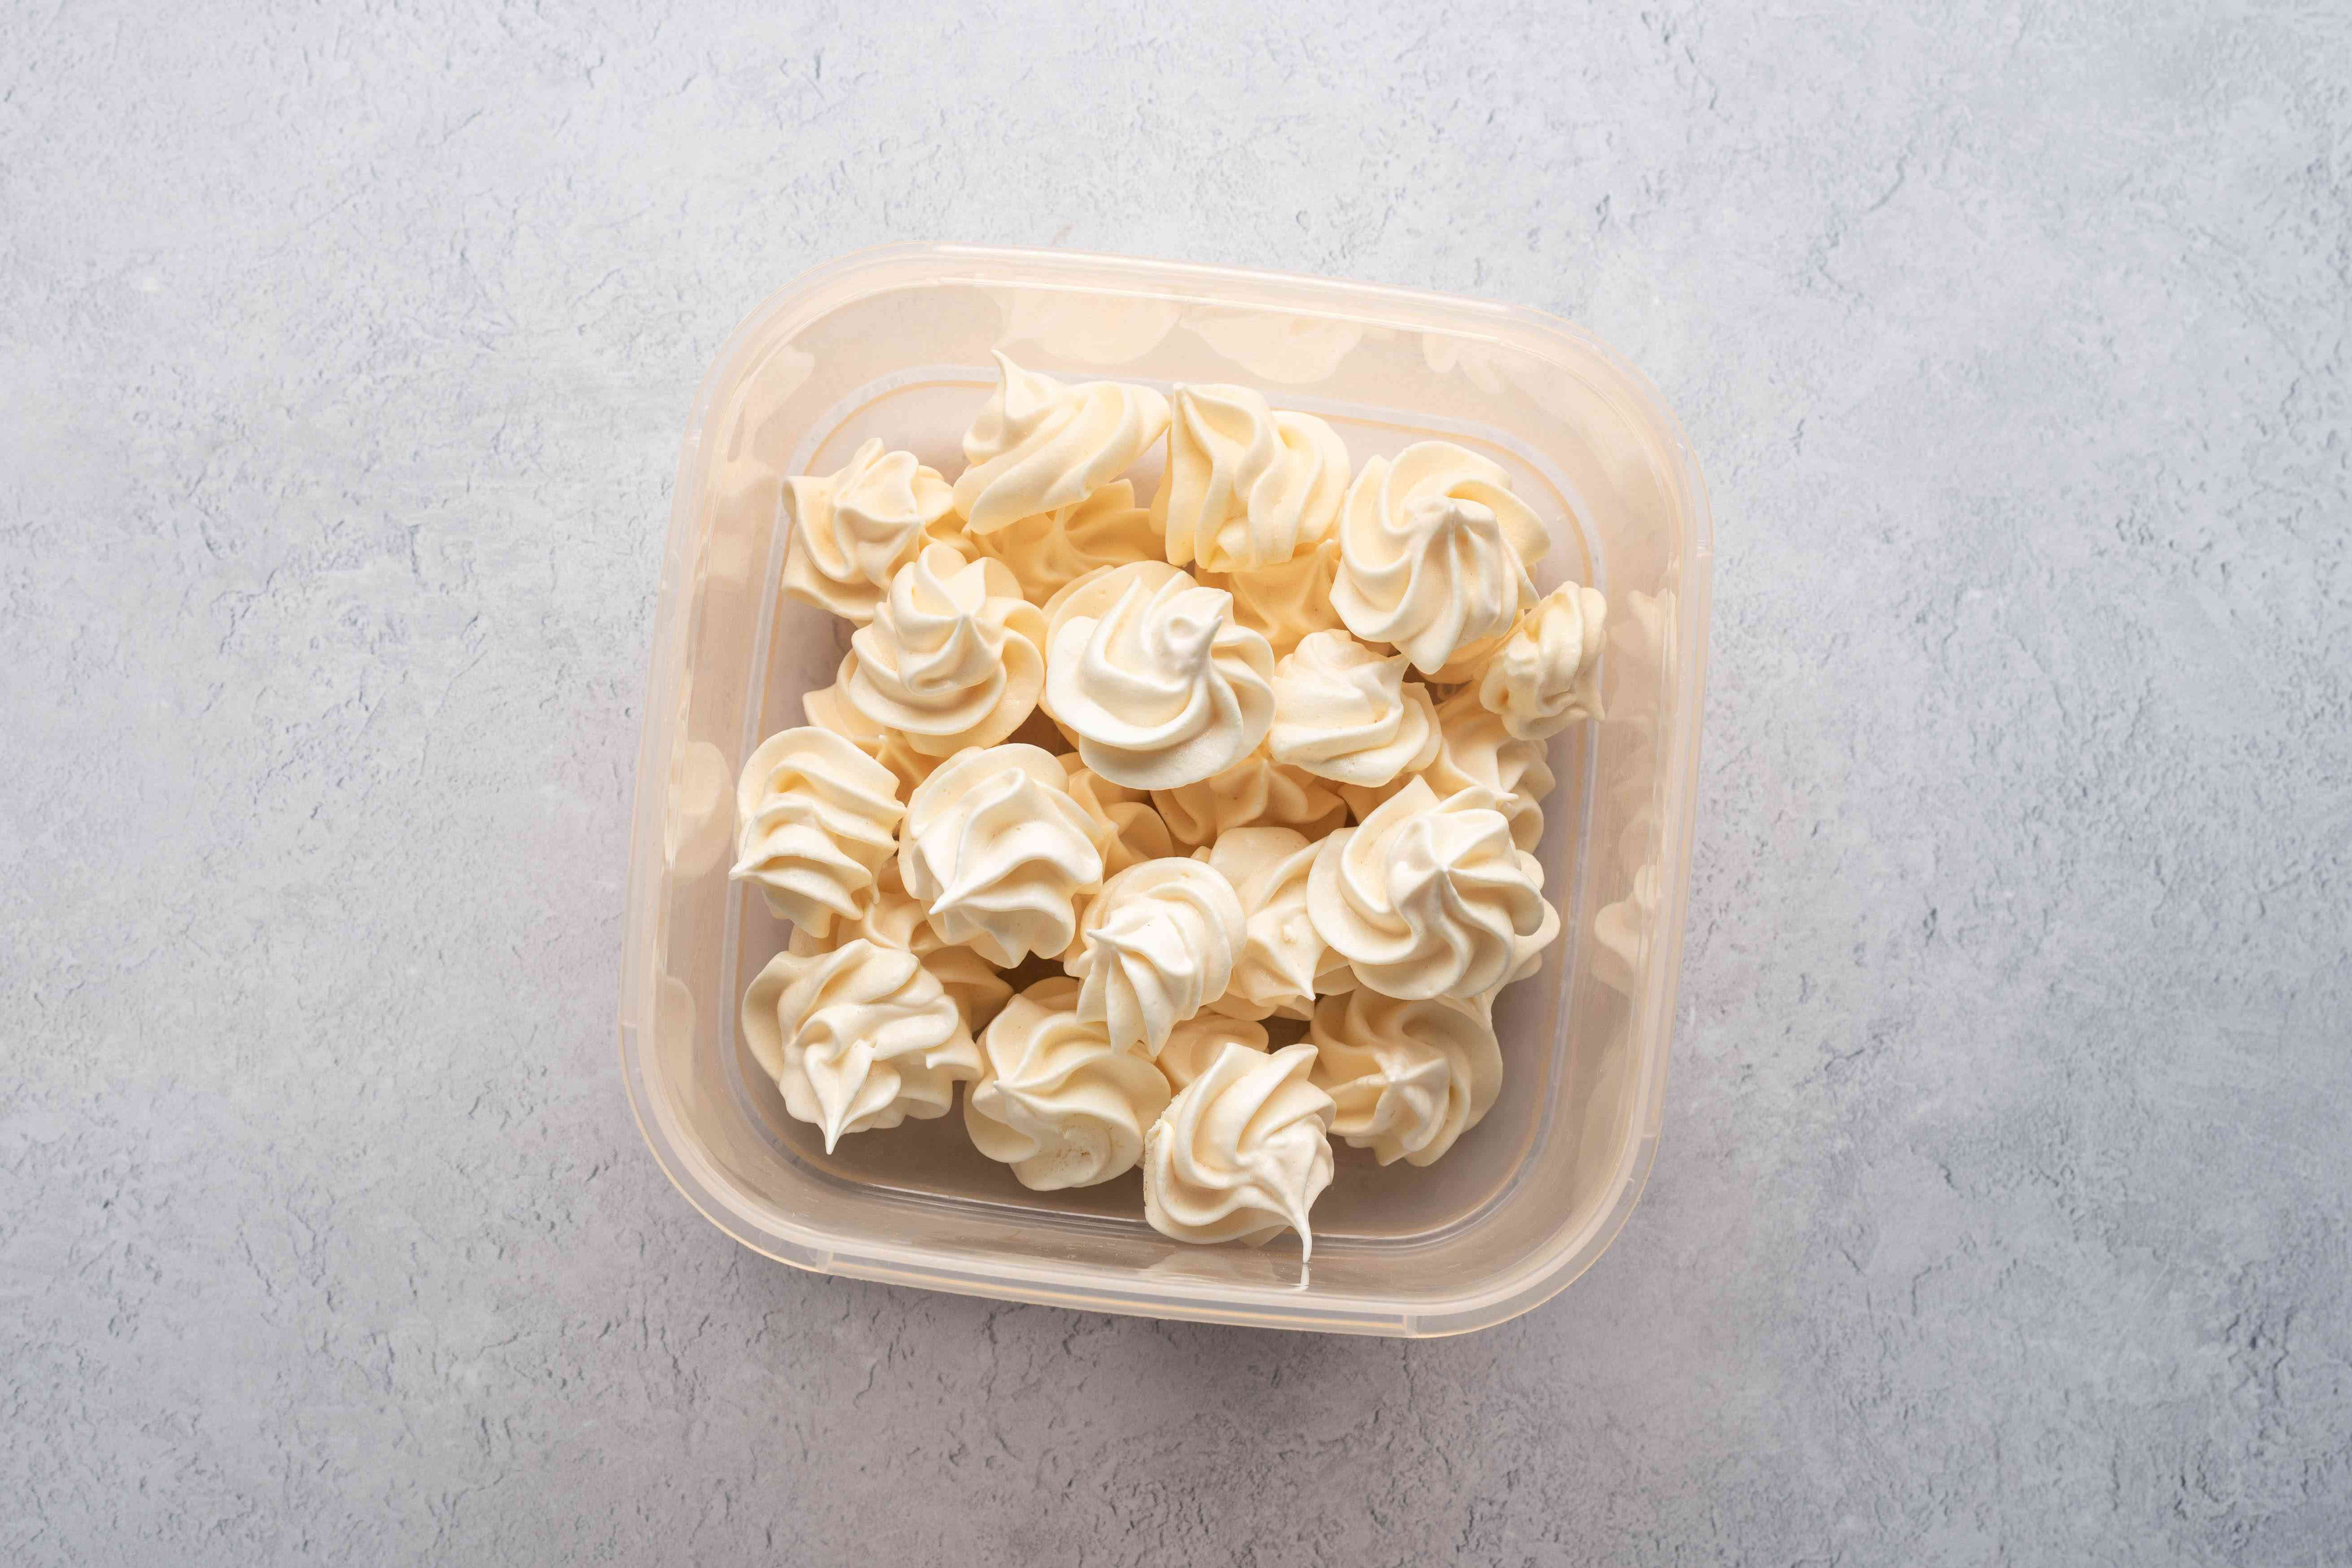 A storage container filled with meringue kisses